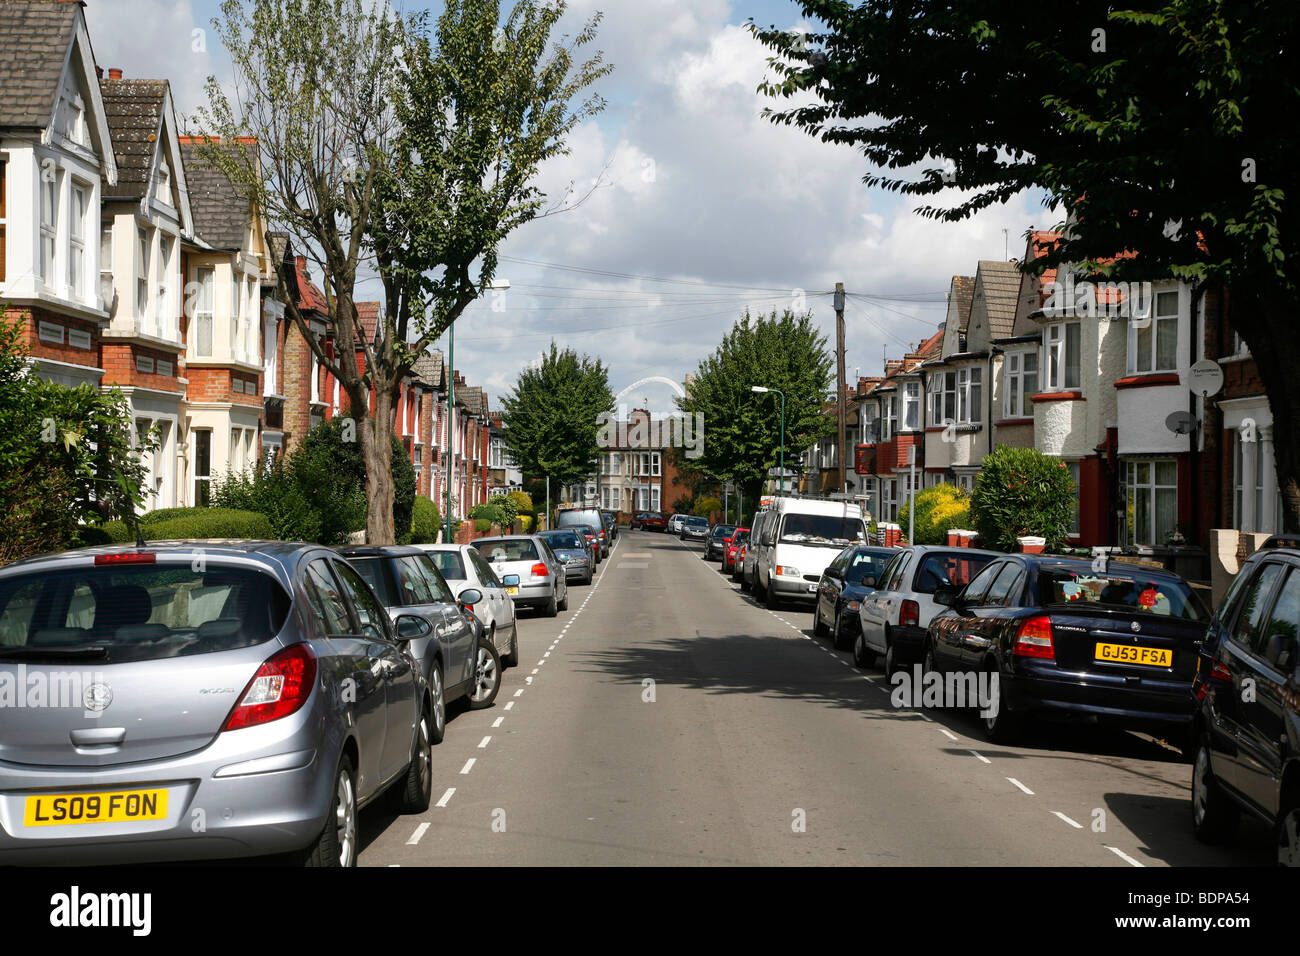 Looking down Harlesden Gardens to a distant Wembley Arch, Harlesden, London, UK - Stock Image